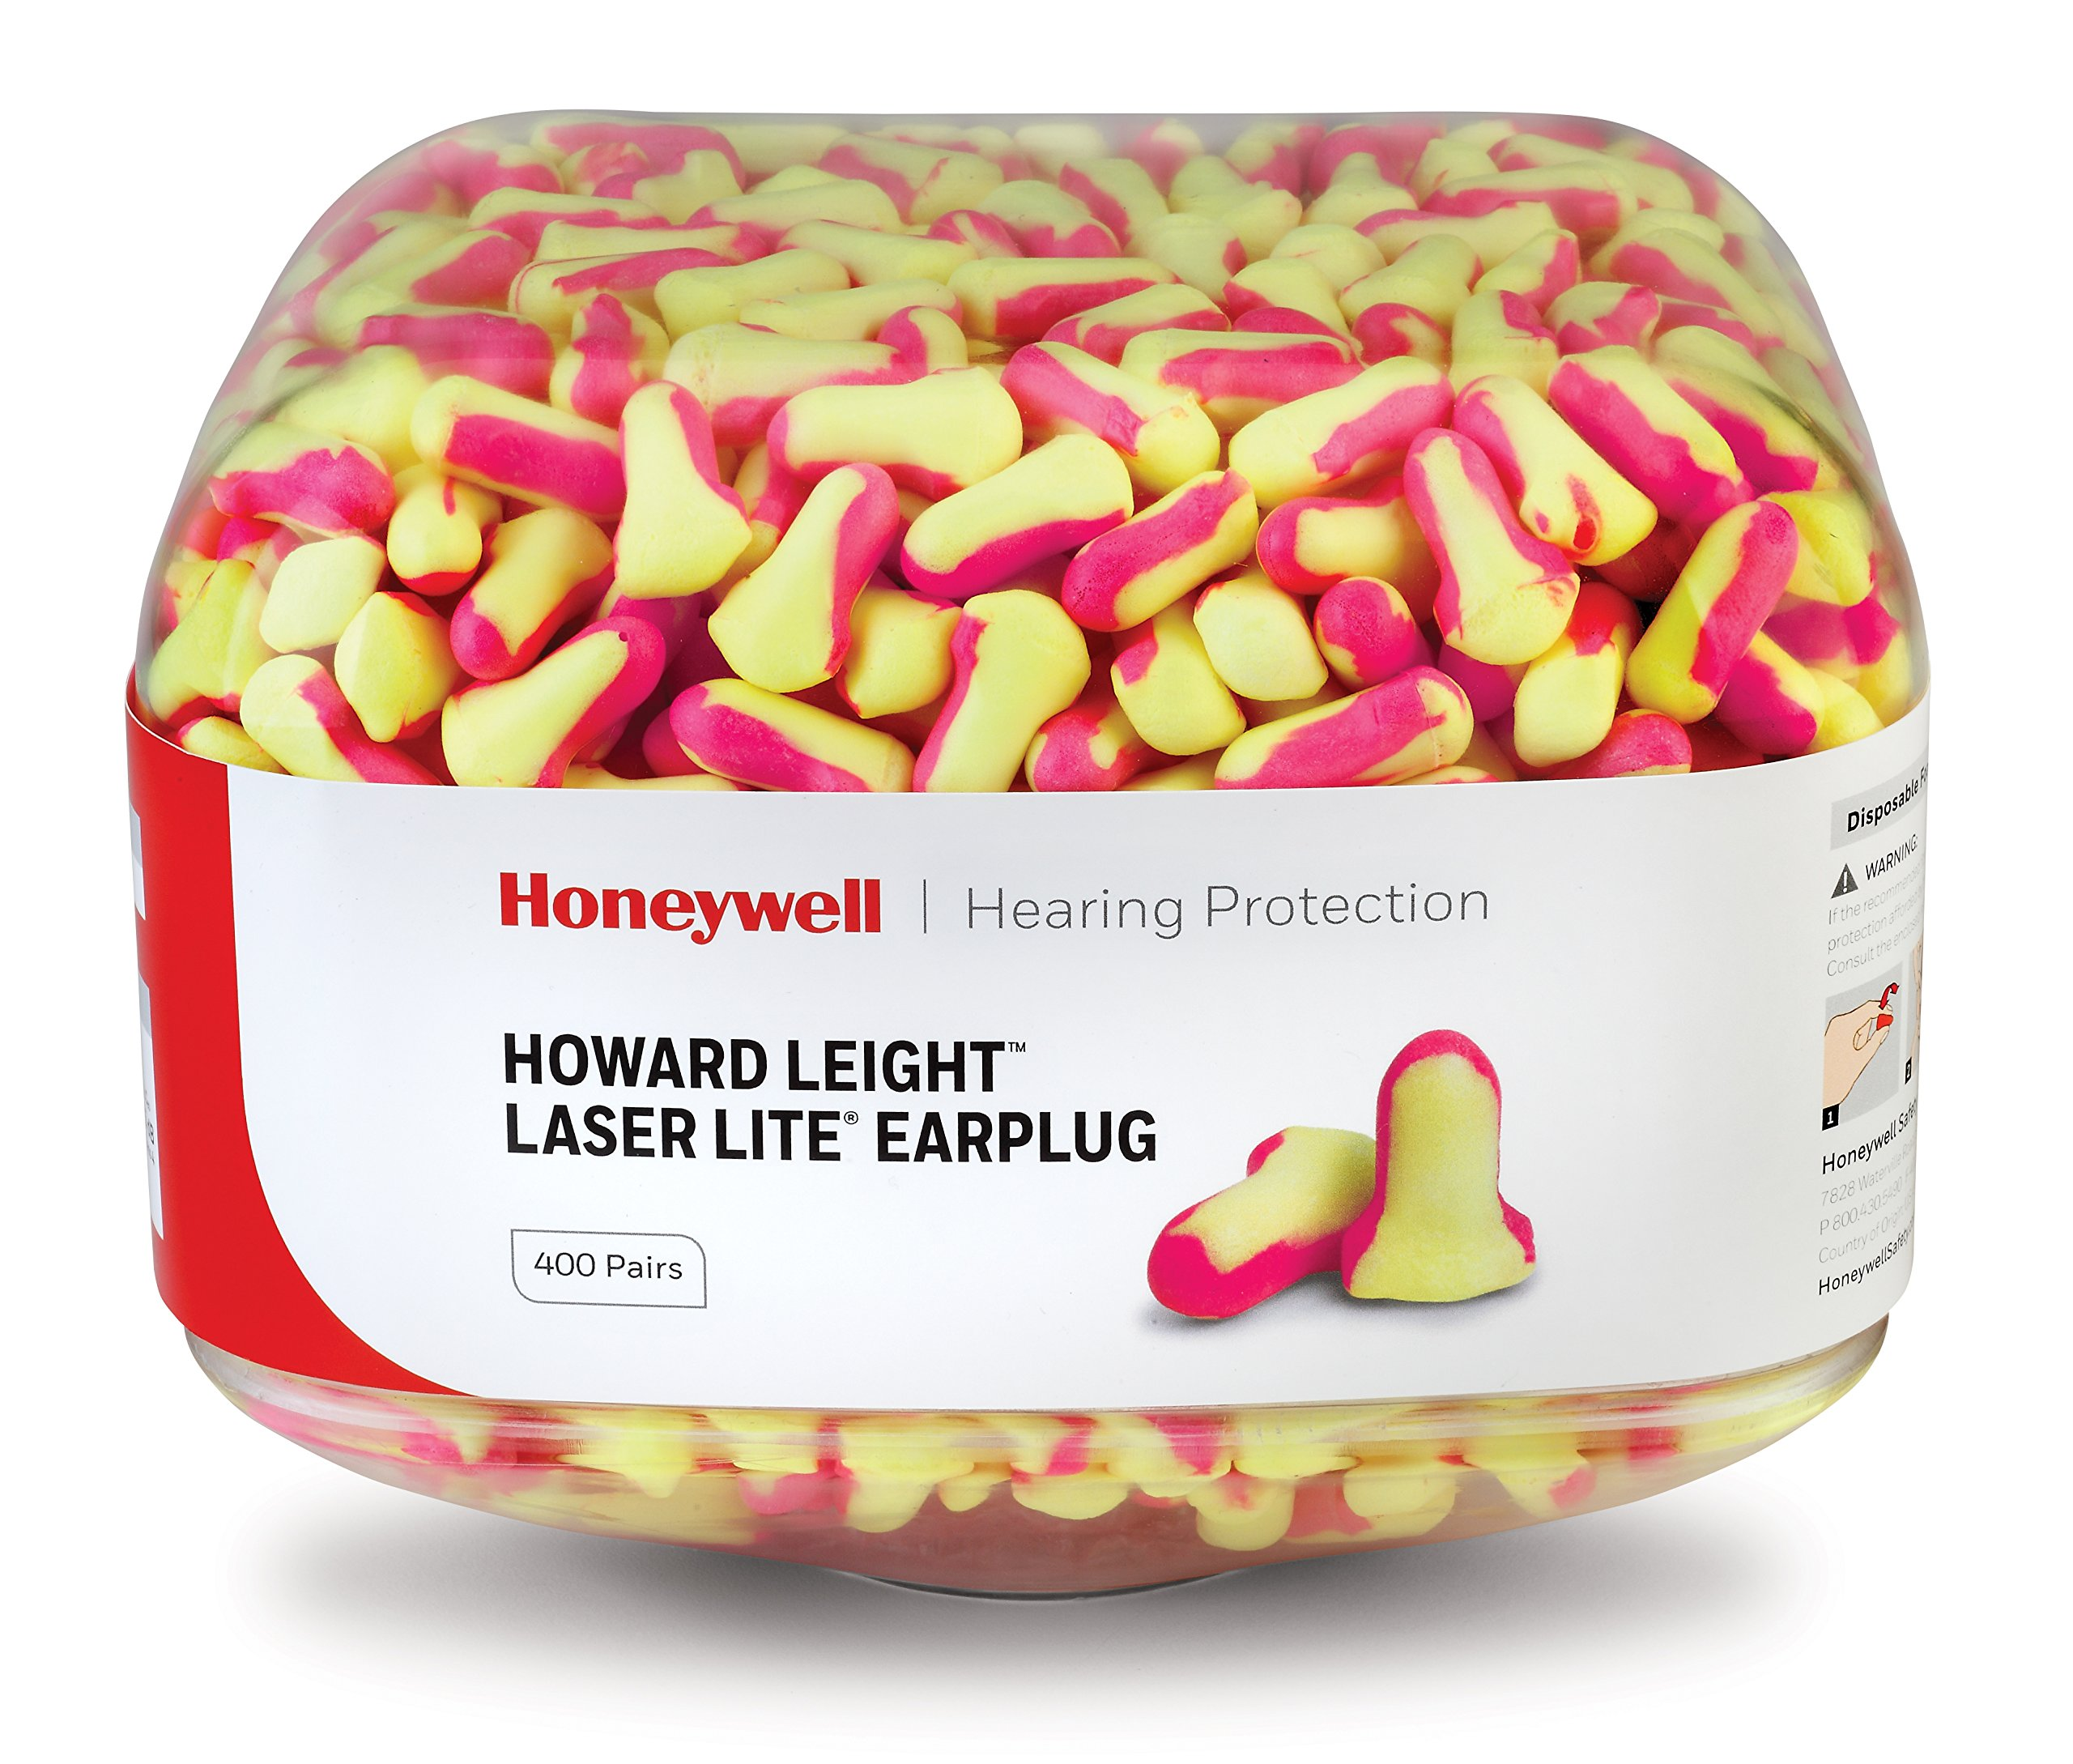 Howard Leight Laser Lite Hi-Visibility Earplug Refill for HL400 Dispenser, 800 Pairs (Two 400-Pair Canisters), NRR 32 (HL400-LL-REFILL)